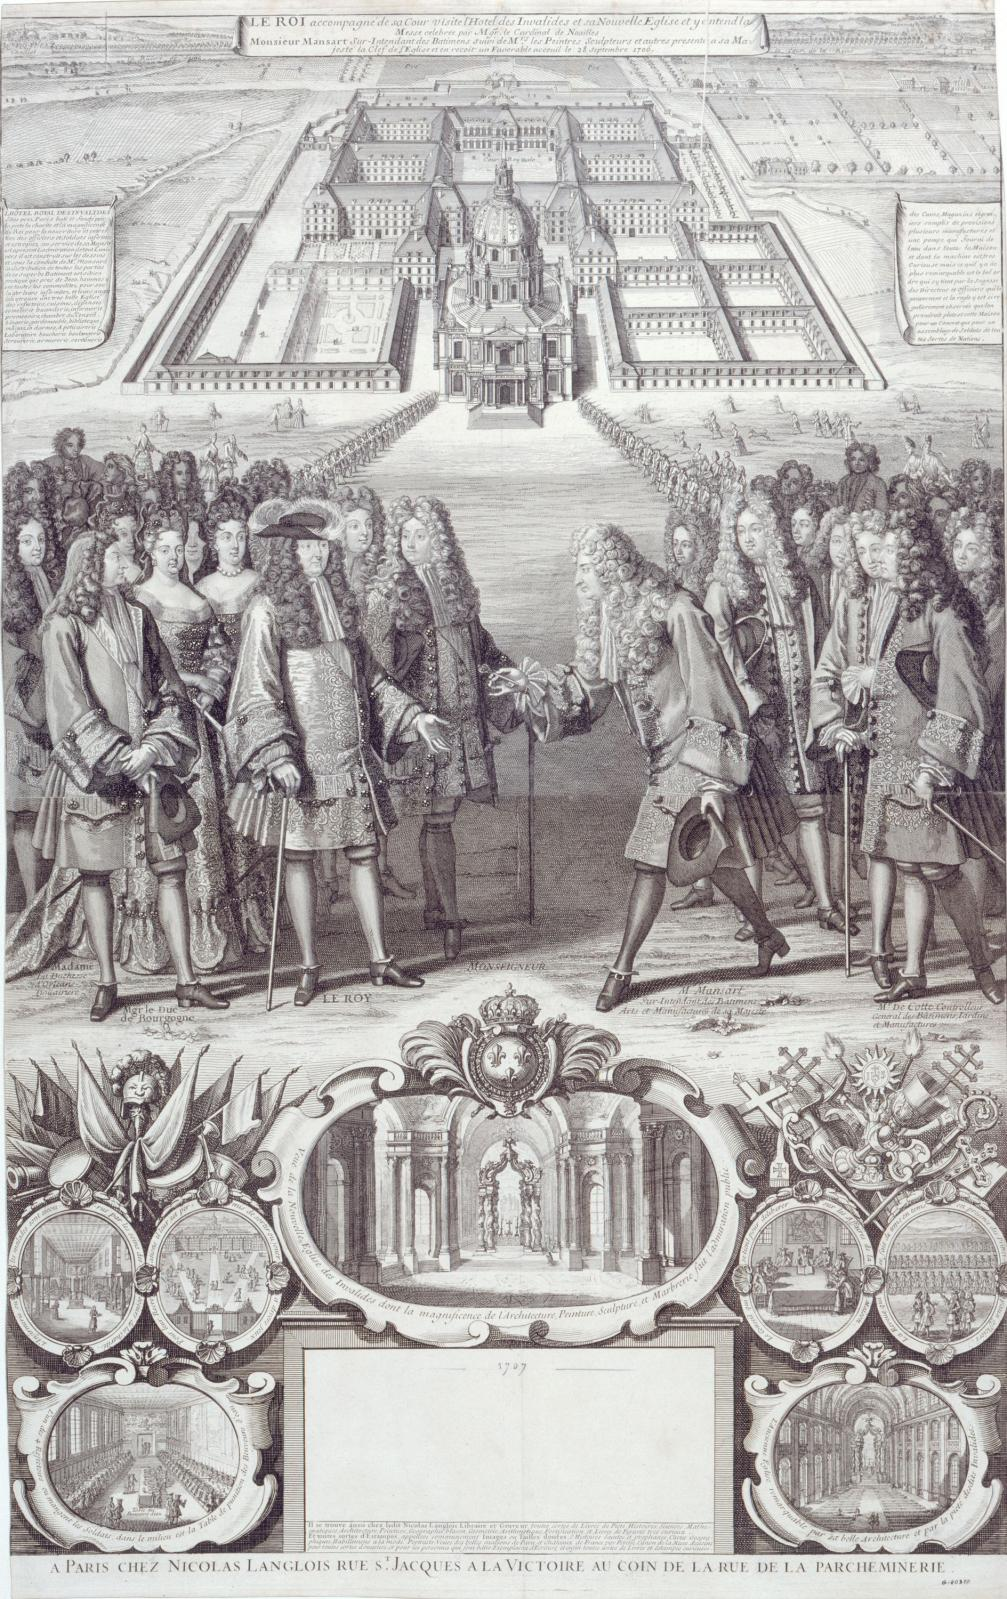 Anonymous, Almanach for 1707: the King visits the Hôtel des Invalides, 28 septembre 1706, musée Carnavalet, Histoire de Paris.© Paris Musé